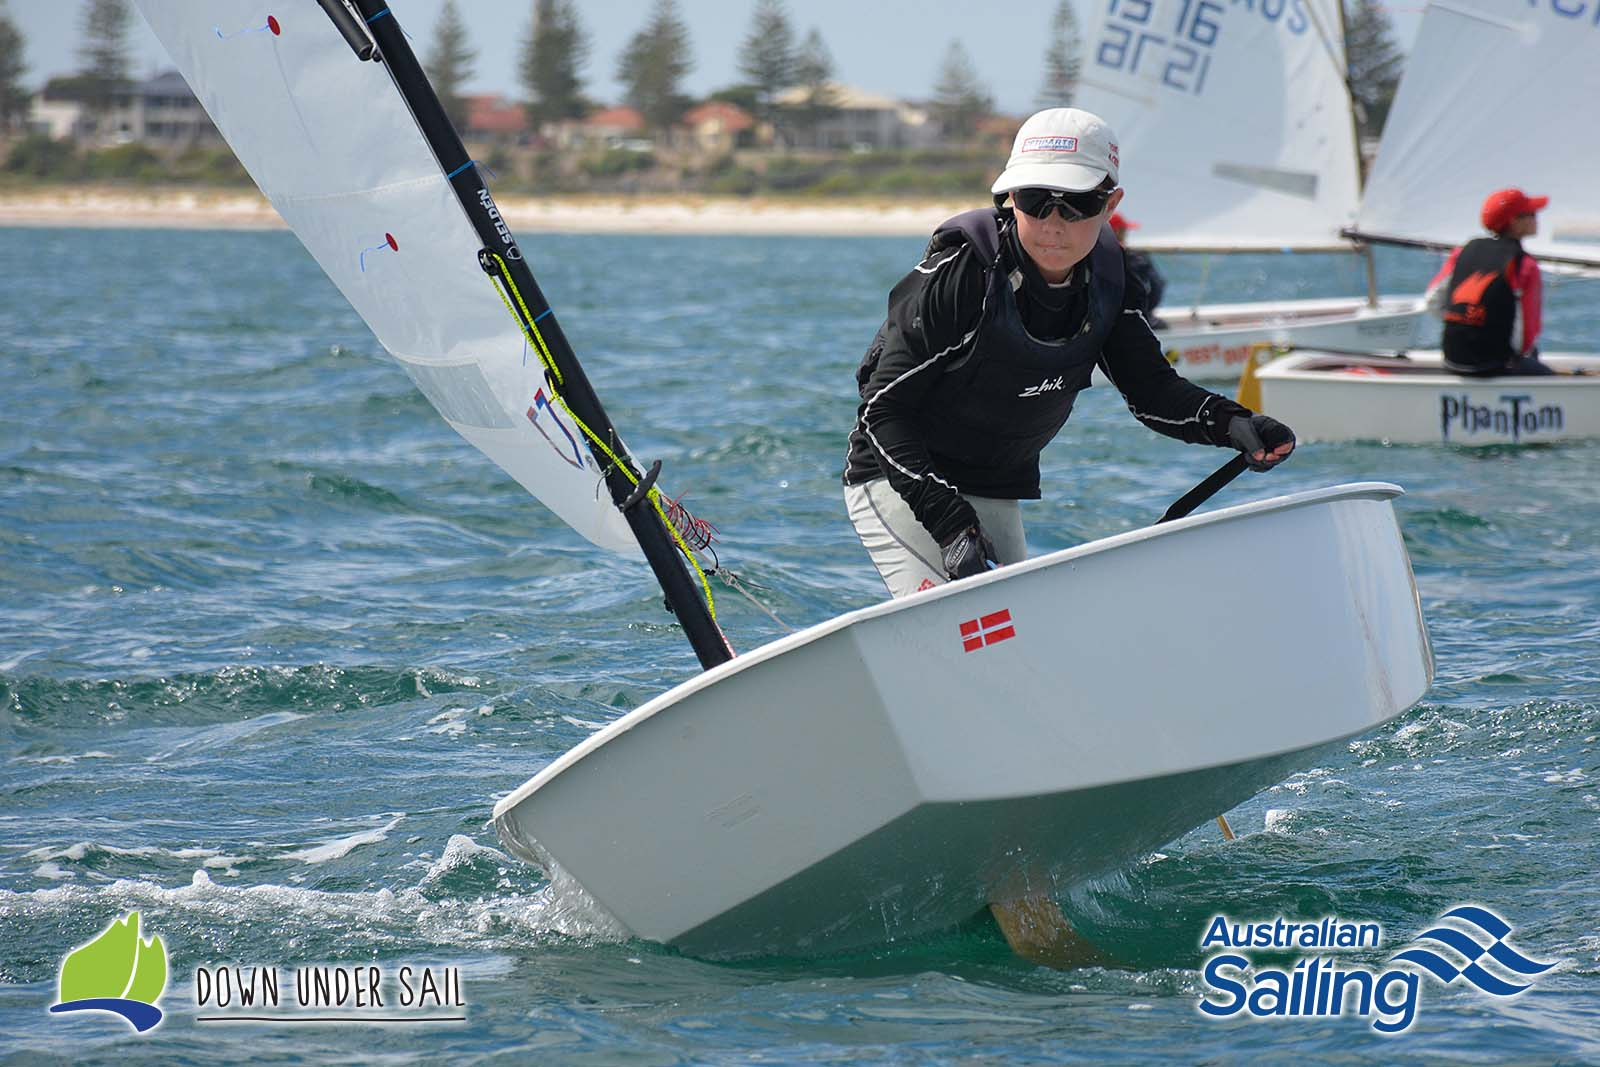 Adelaide Sailing Club's Ben Hinks will be competing in the Optimist Open fleet.